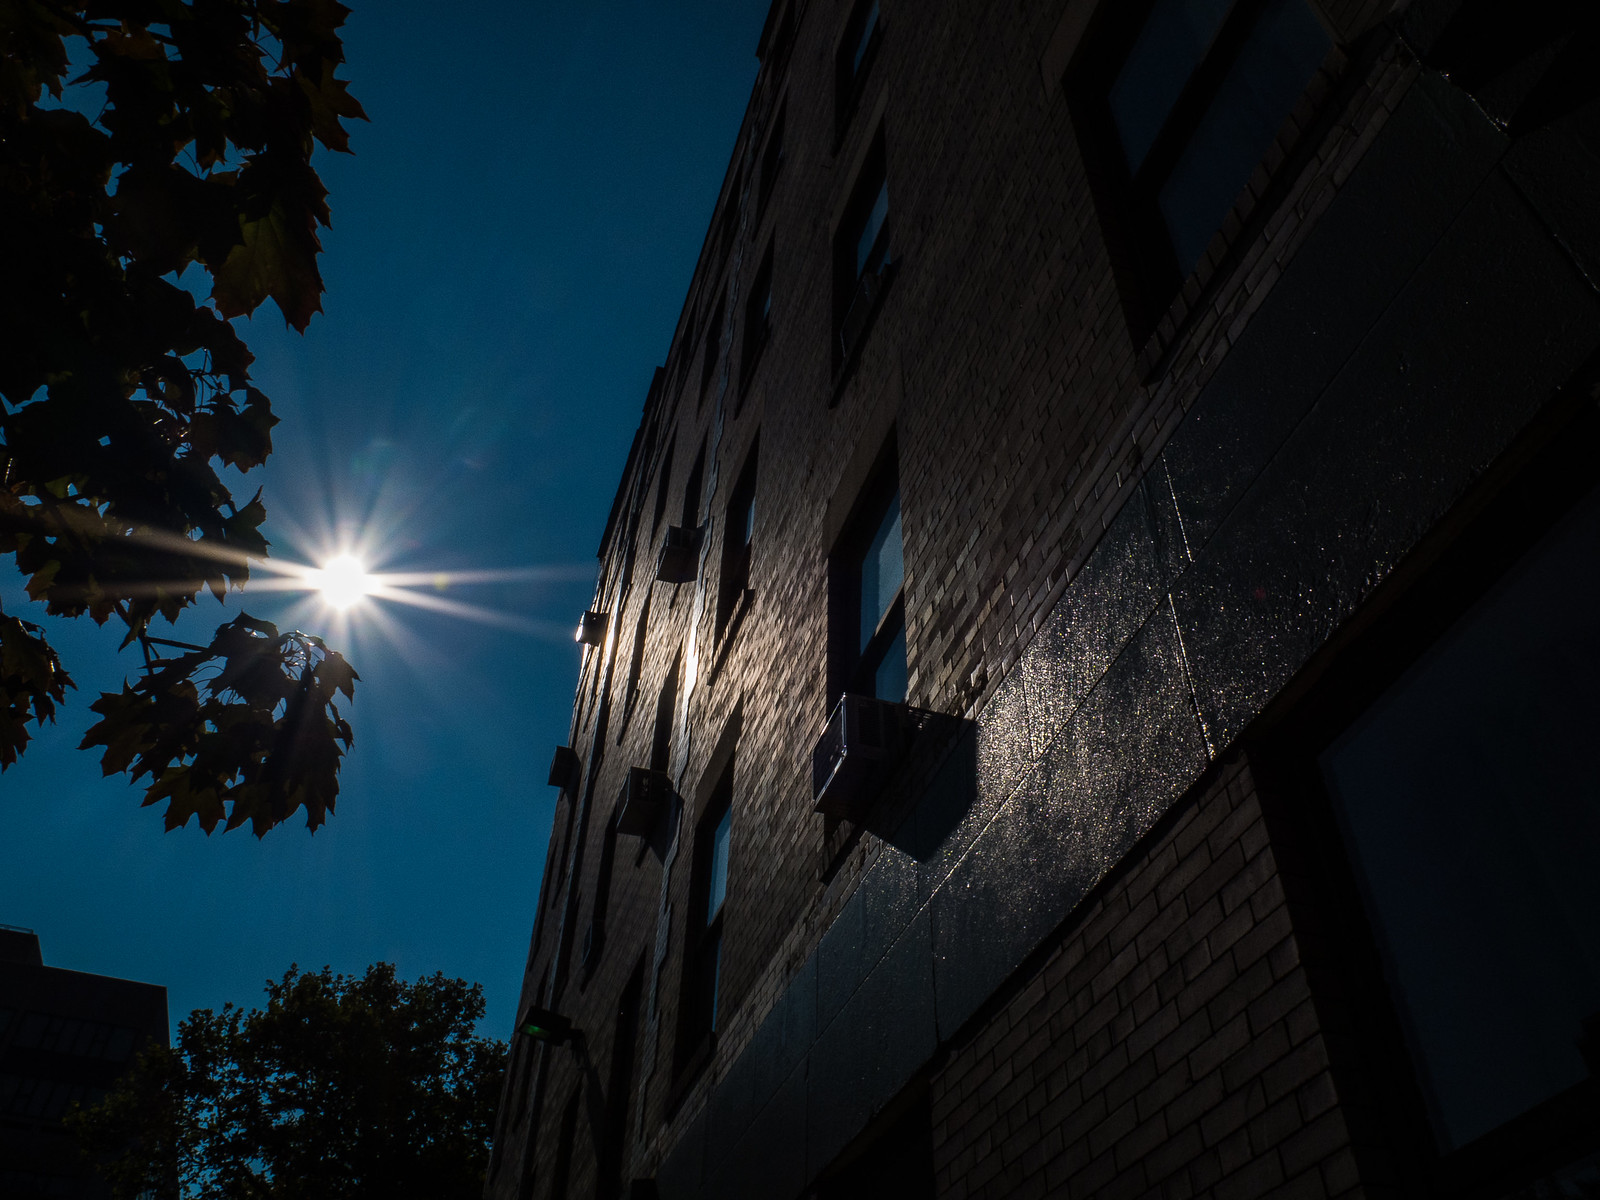 The morning sun upon the walls of my home. by wwward0